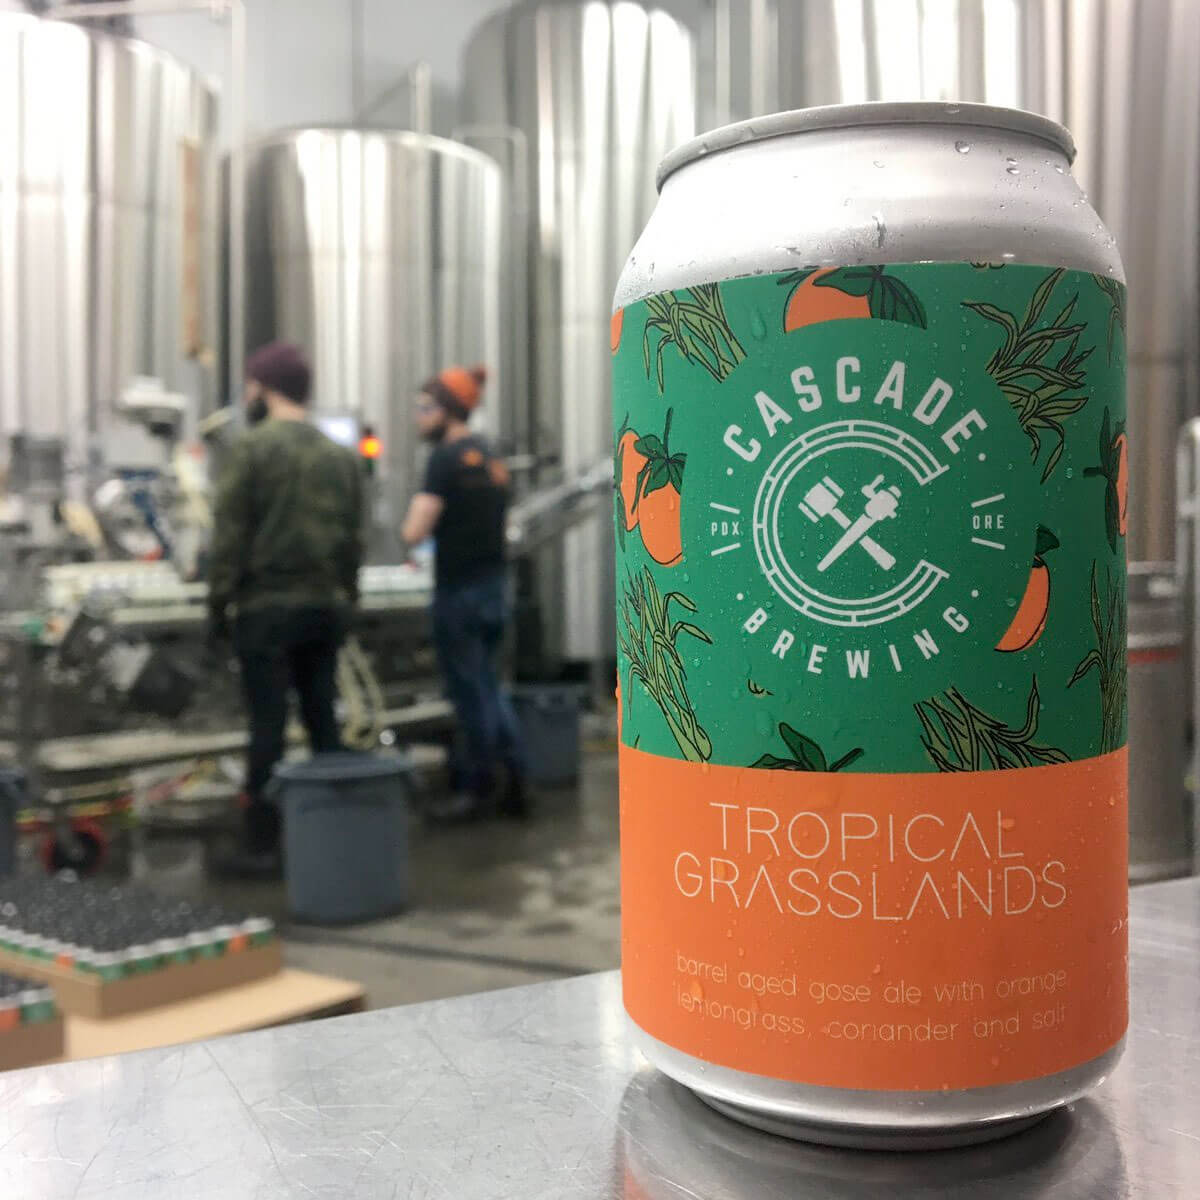 12 oz. can of Tropical Grasslands by Cascade Brewing